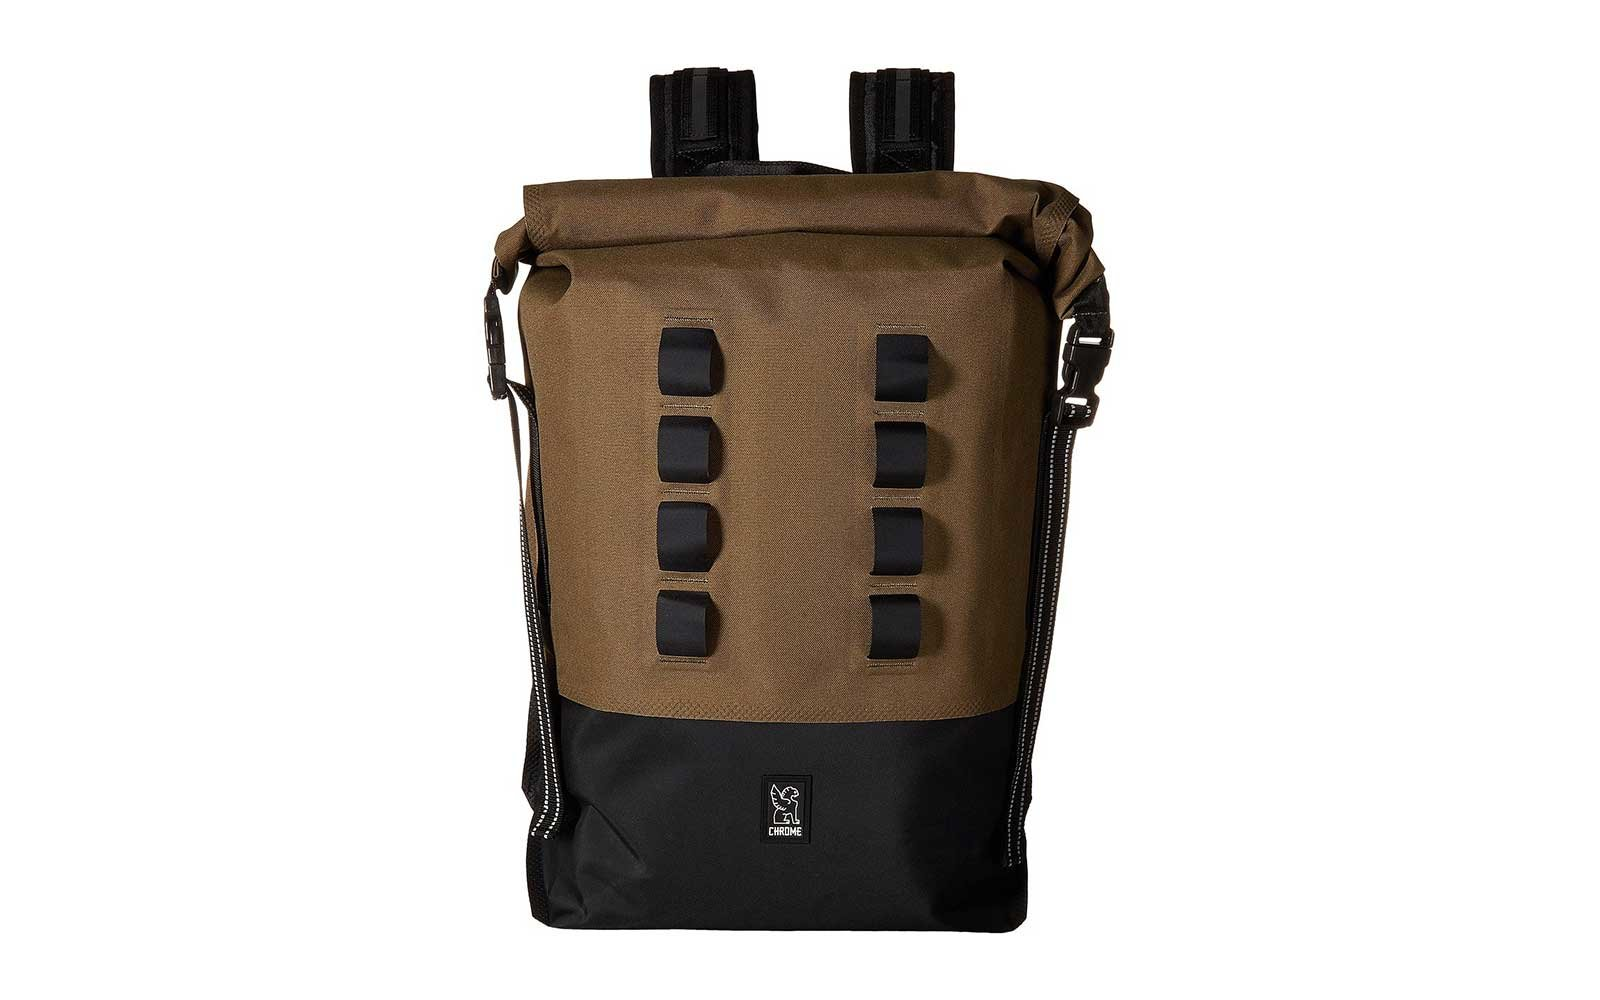 Brown rolltop waterproof backpack from Chrome Urban